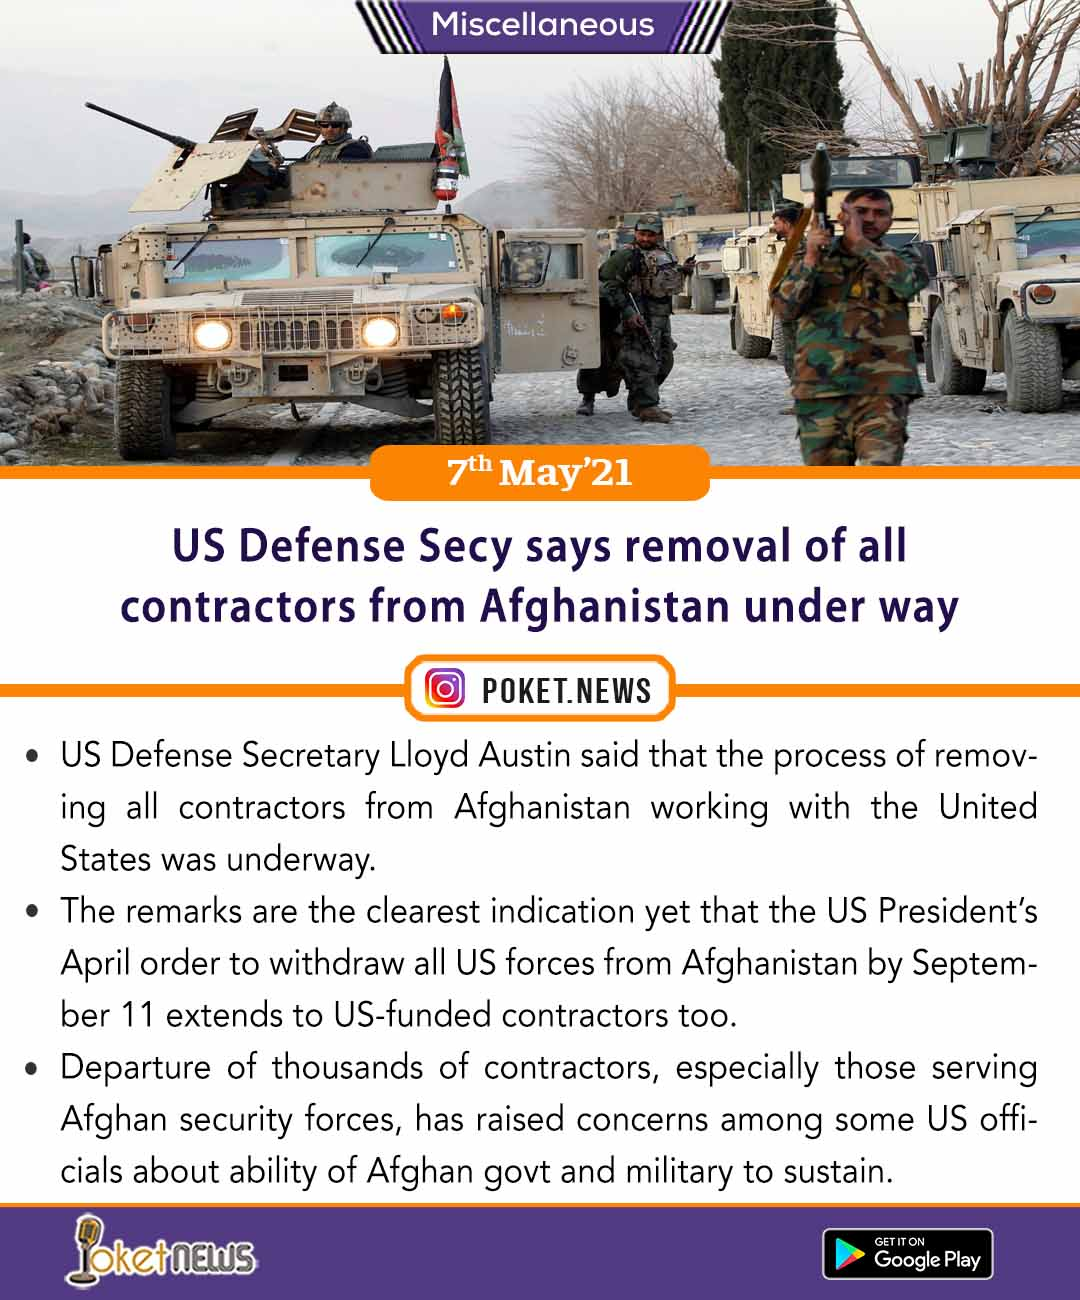 US Defense Secy says removal of all contractors from Afghanistan under way